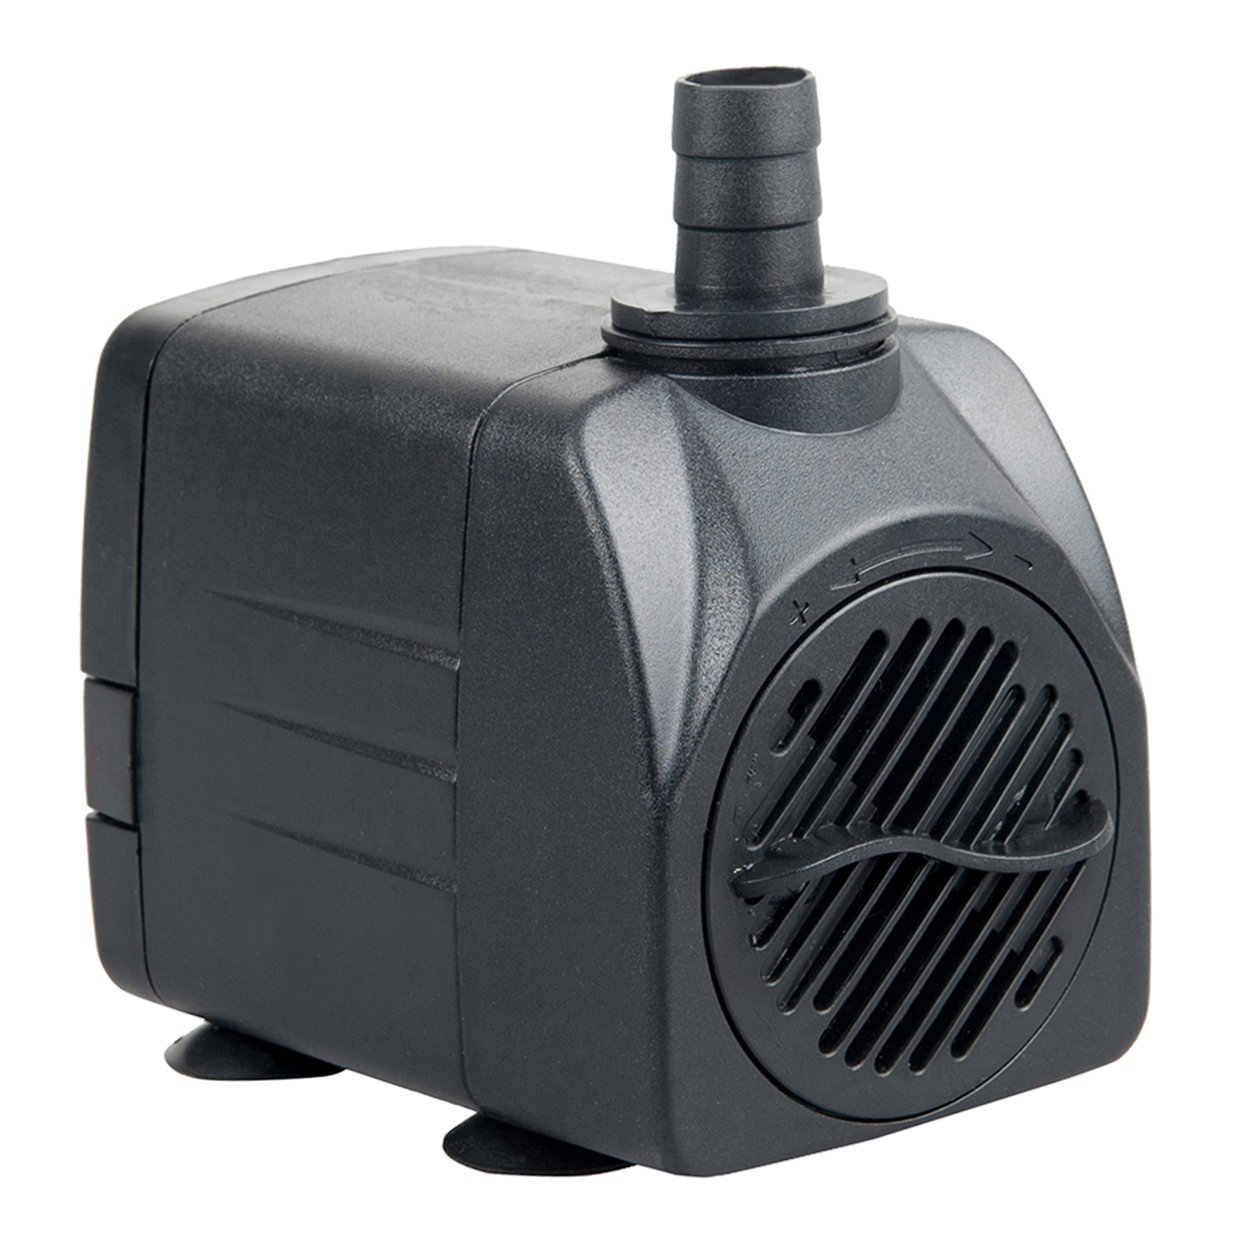 Uniclife UL400 Submersible Water Pump, 400 GPH Aquarium/Hydroponic/Fish Tank/Fountain/Pond/Statuary with 6' UL Listed Power Cord